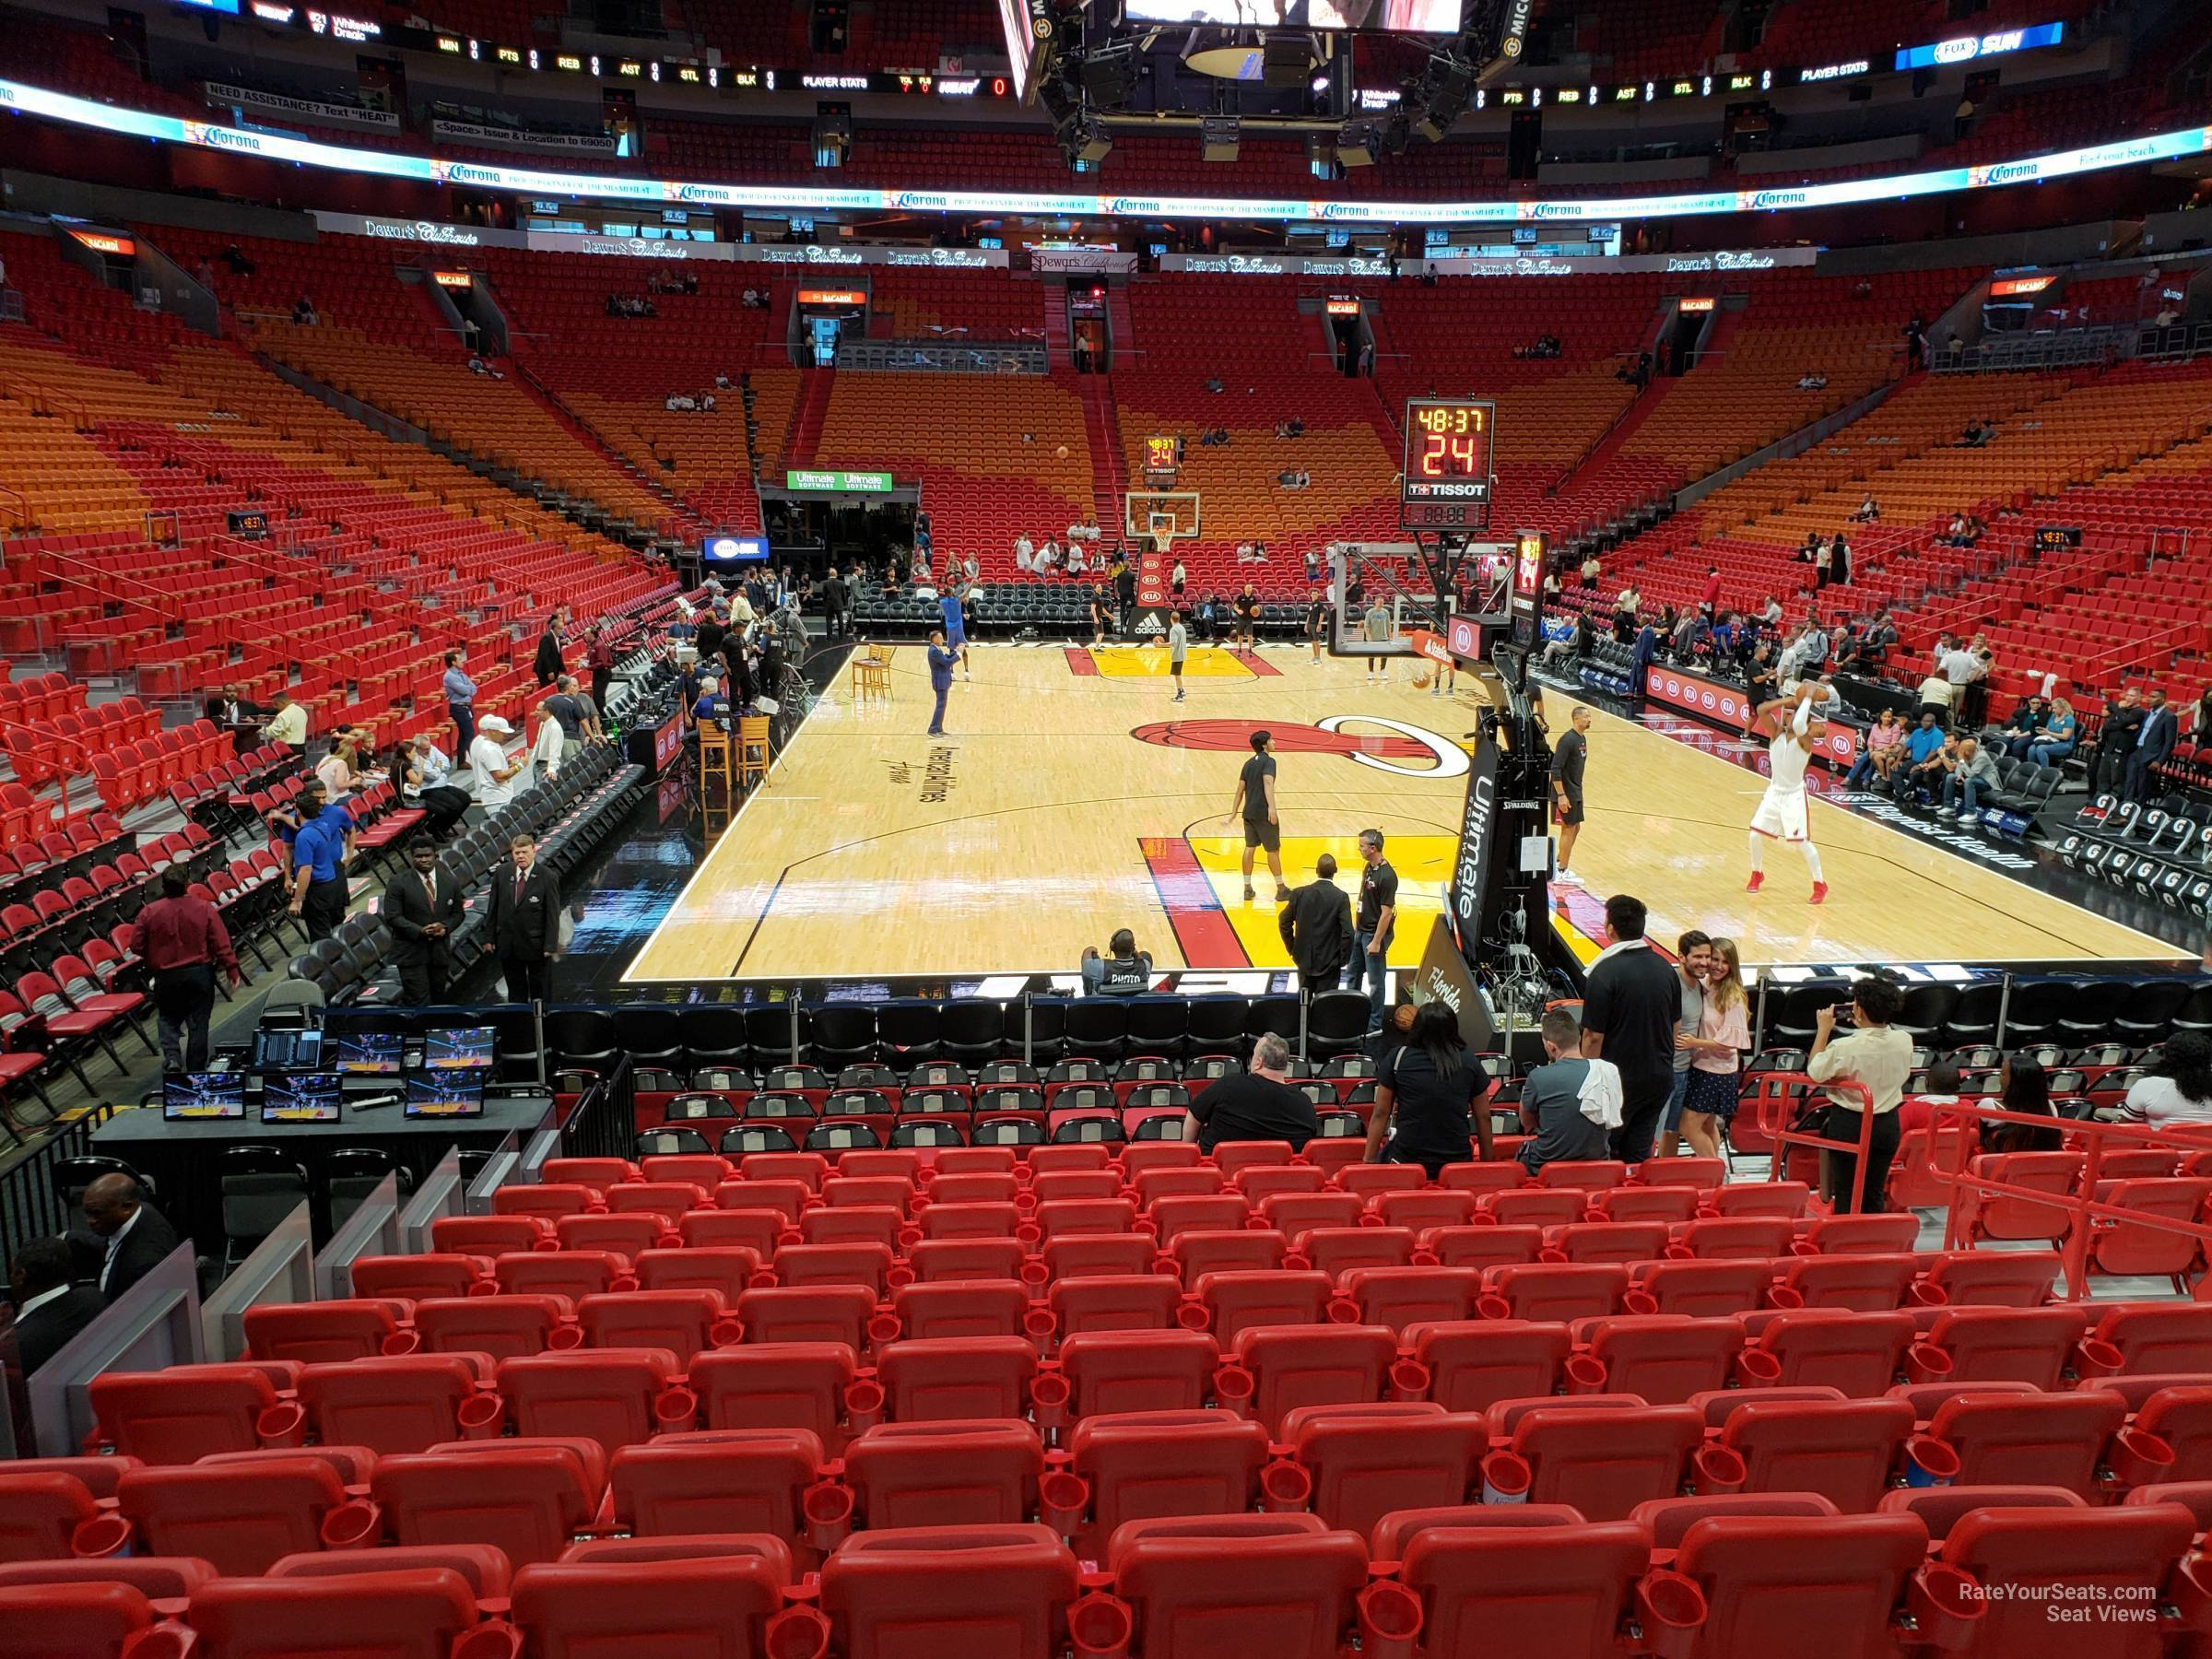 section 113 at americanairlines arena - miami heat